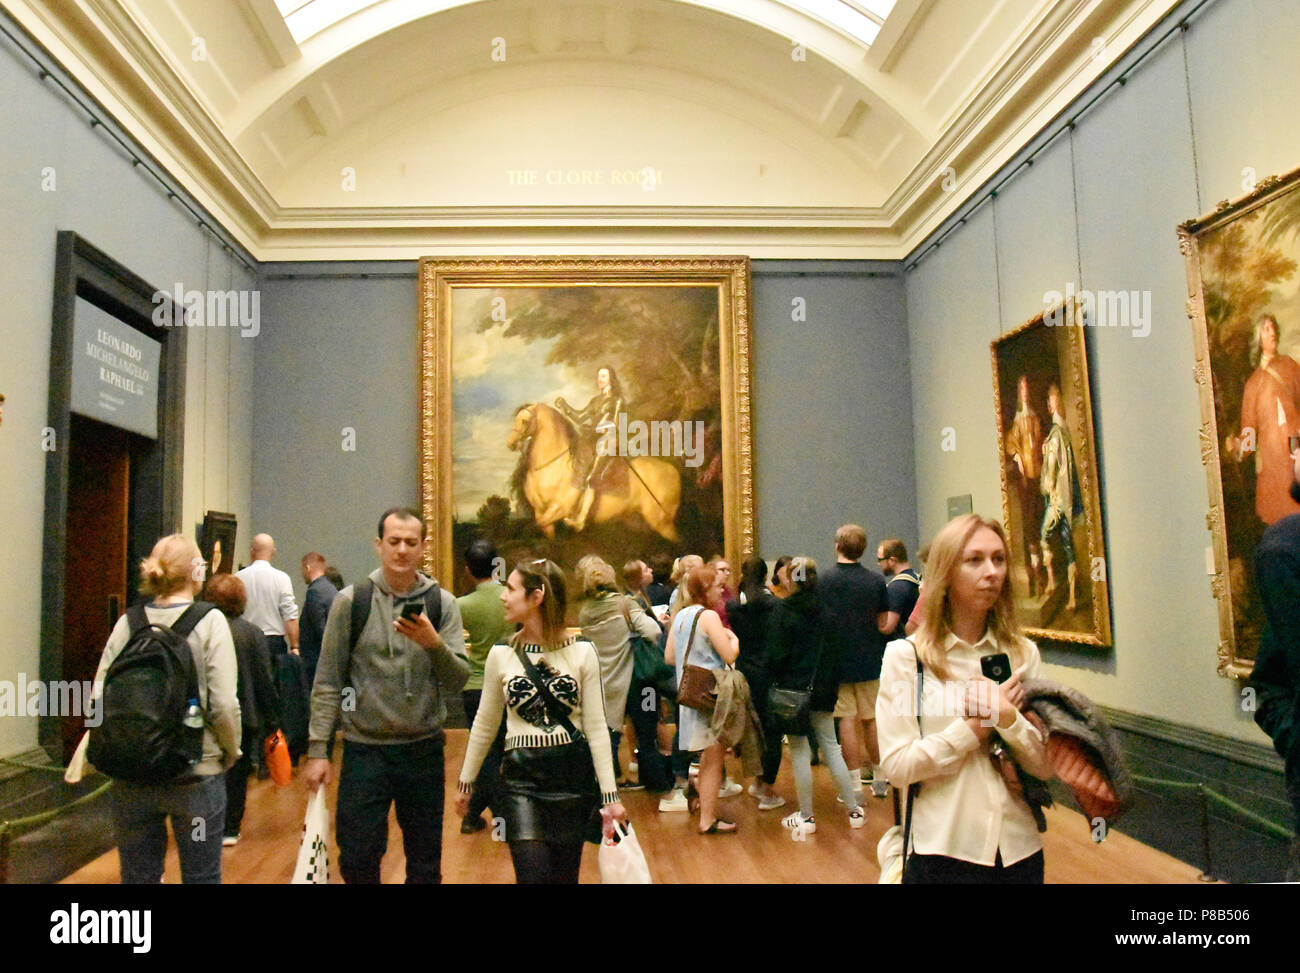 People in the galleries of the National Gallery, Trafalgar Square, London, UK. - Stock Image